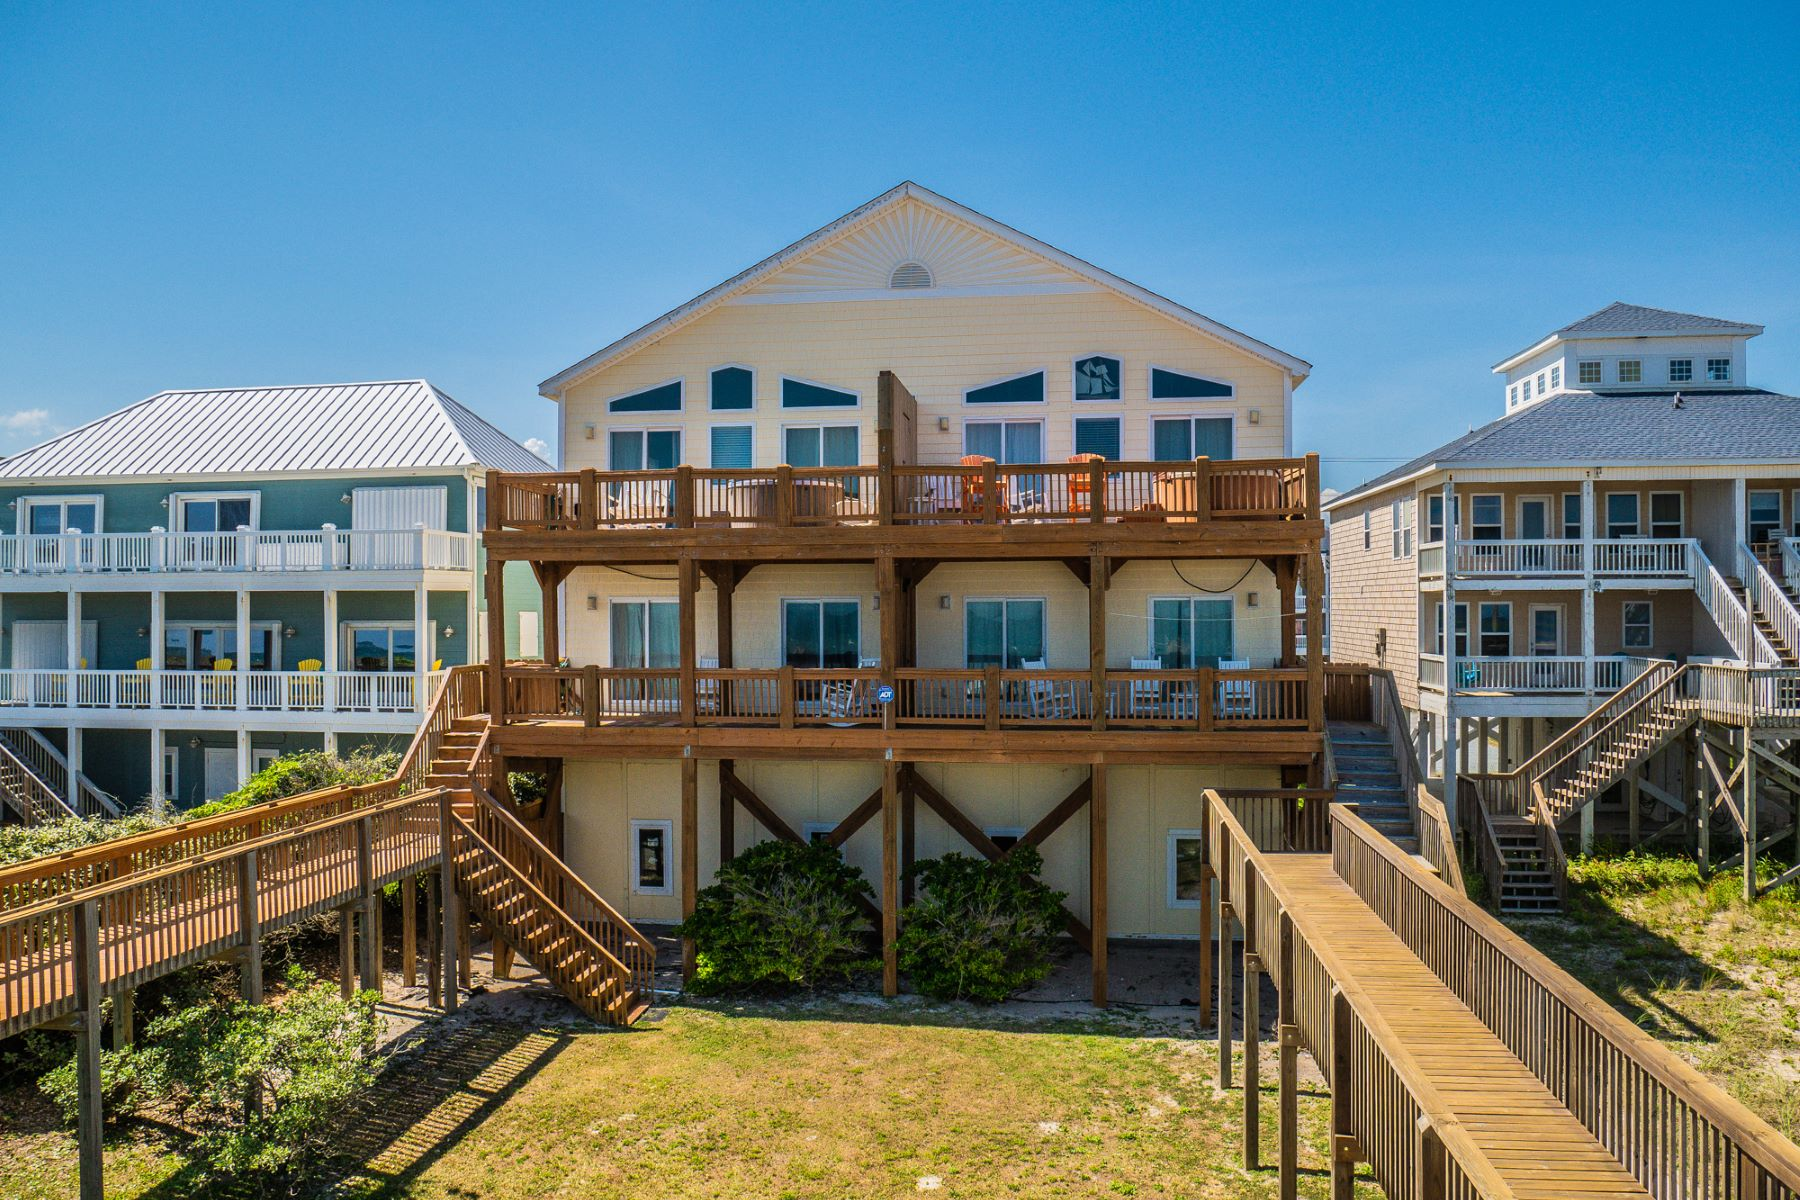 Single Family Homes for Active at Family Oceanfront Getaway in North Topsail 3726 Island Drive N Topsail Beach, North Carolina 28460 United States